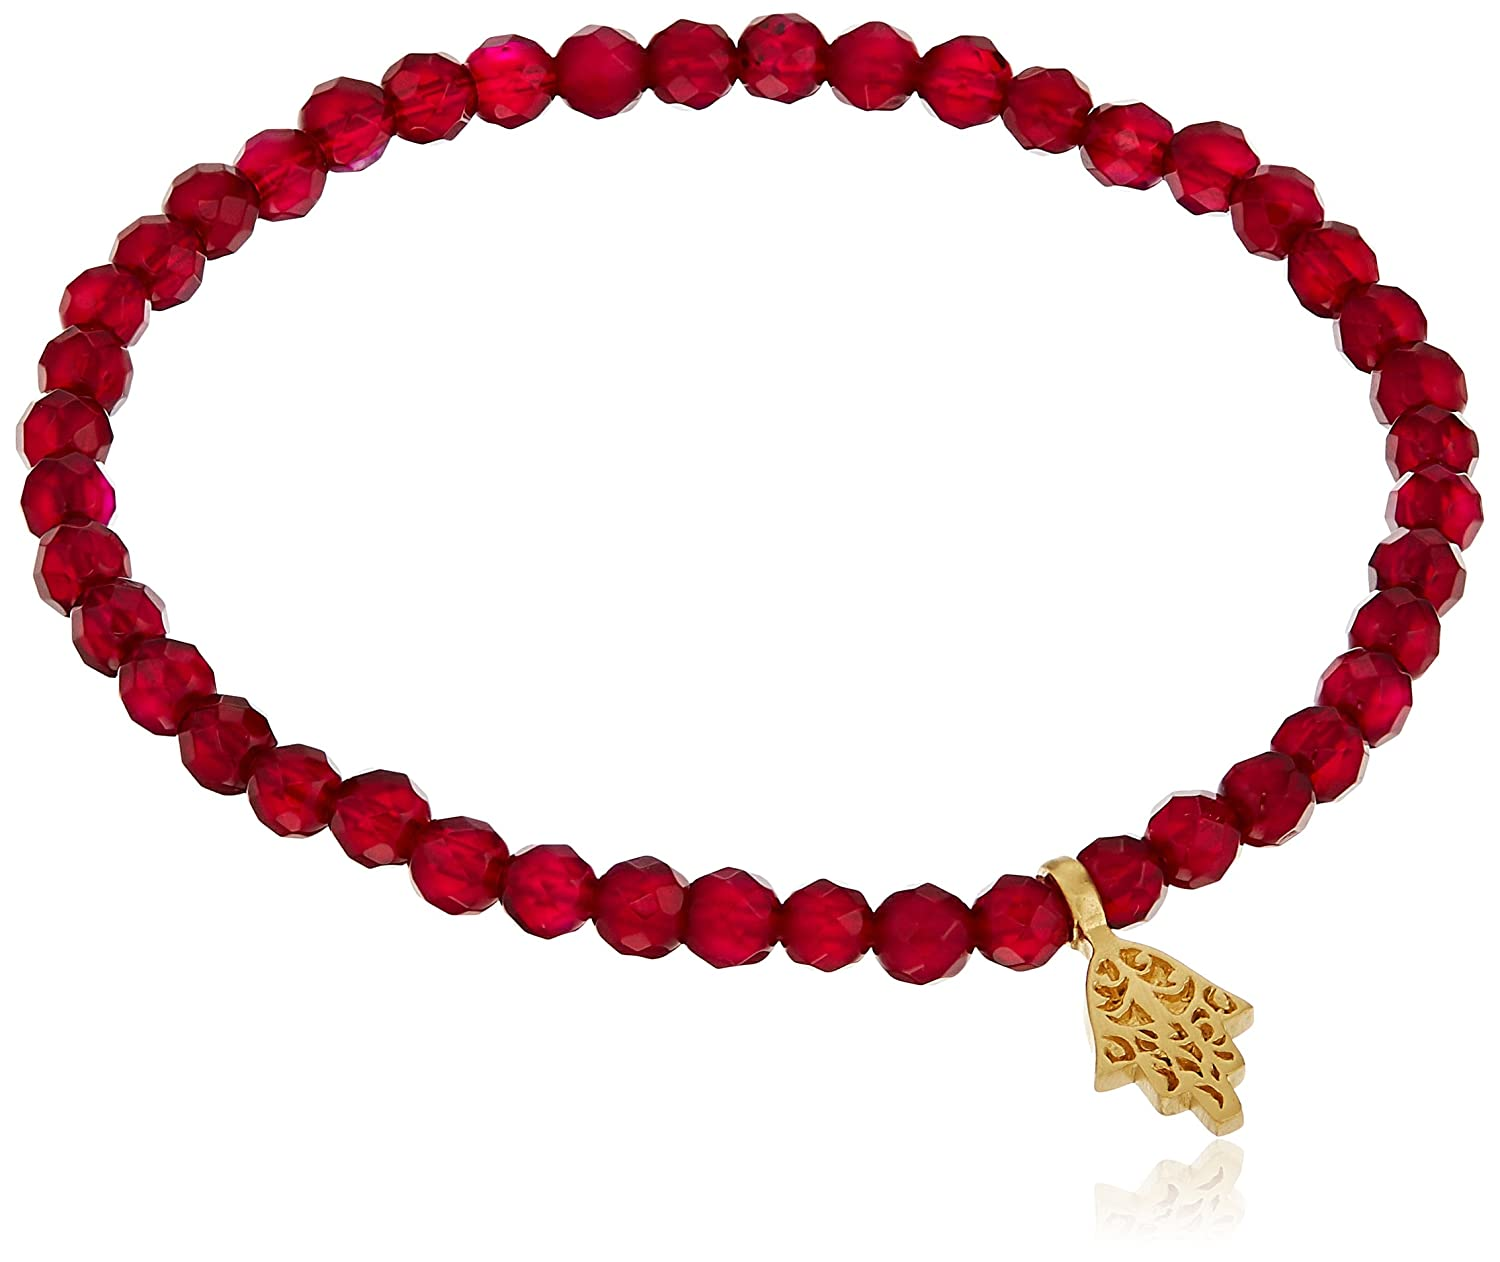 Satya Jewelry 4mm Fuchsia Agate Gold-Plated Hamsa Stretch Bracelet BG83-HAM